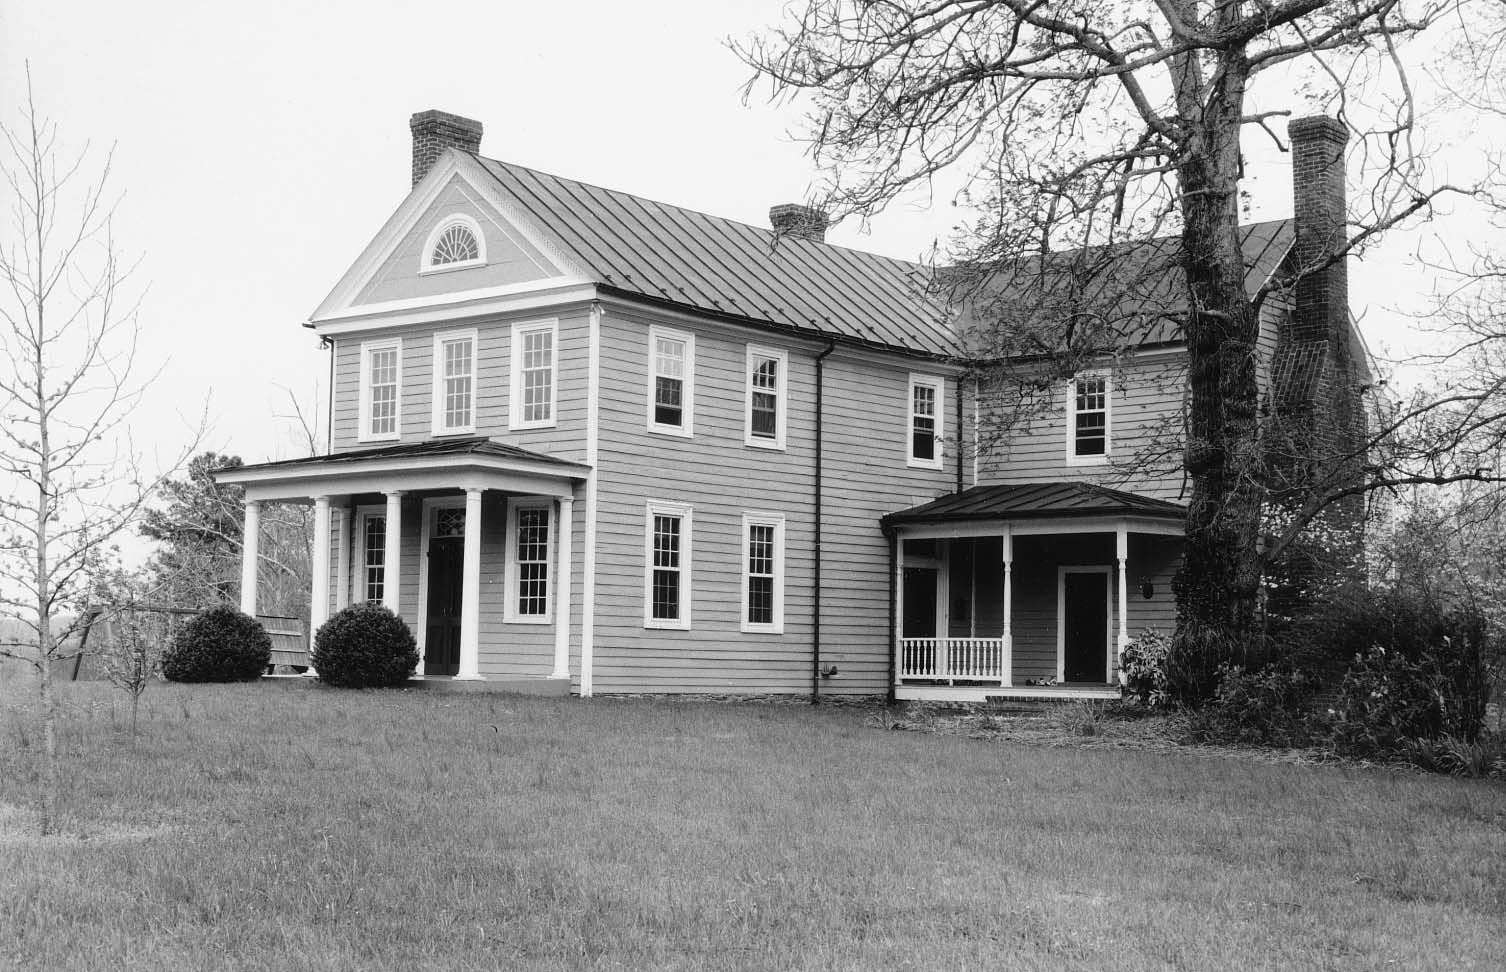 Woodstock Hall Tavern (renovated)(VLR 4th edition;VDHR)